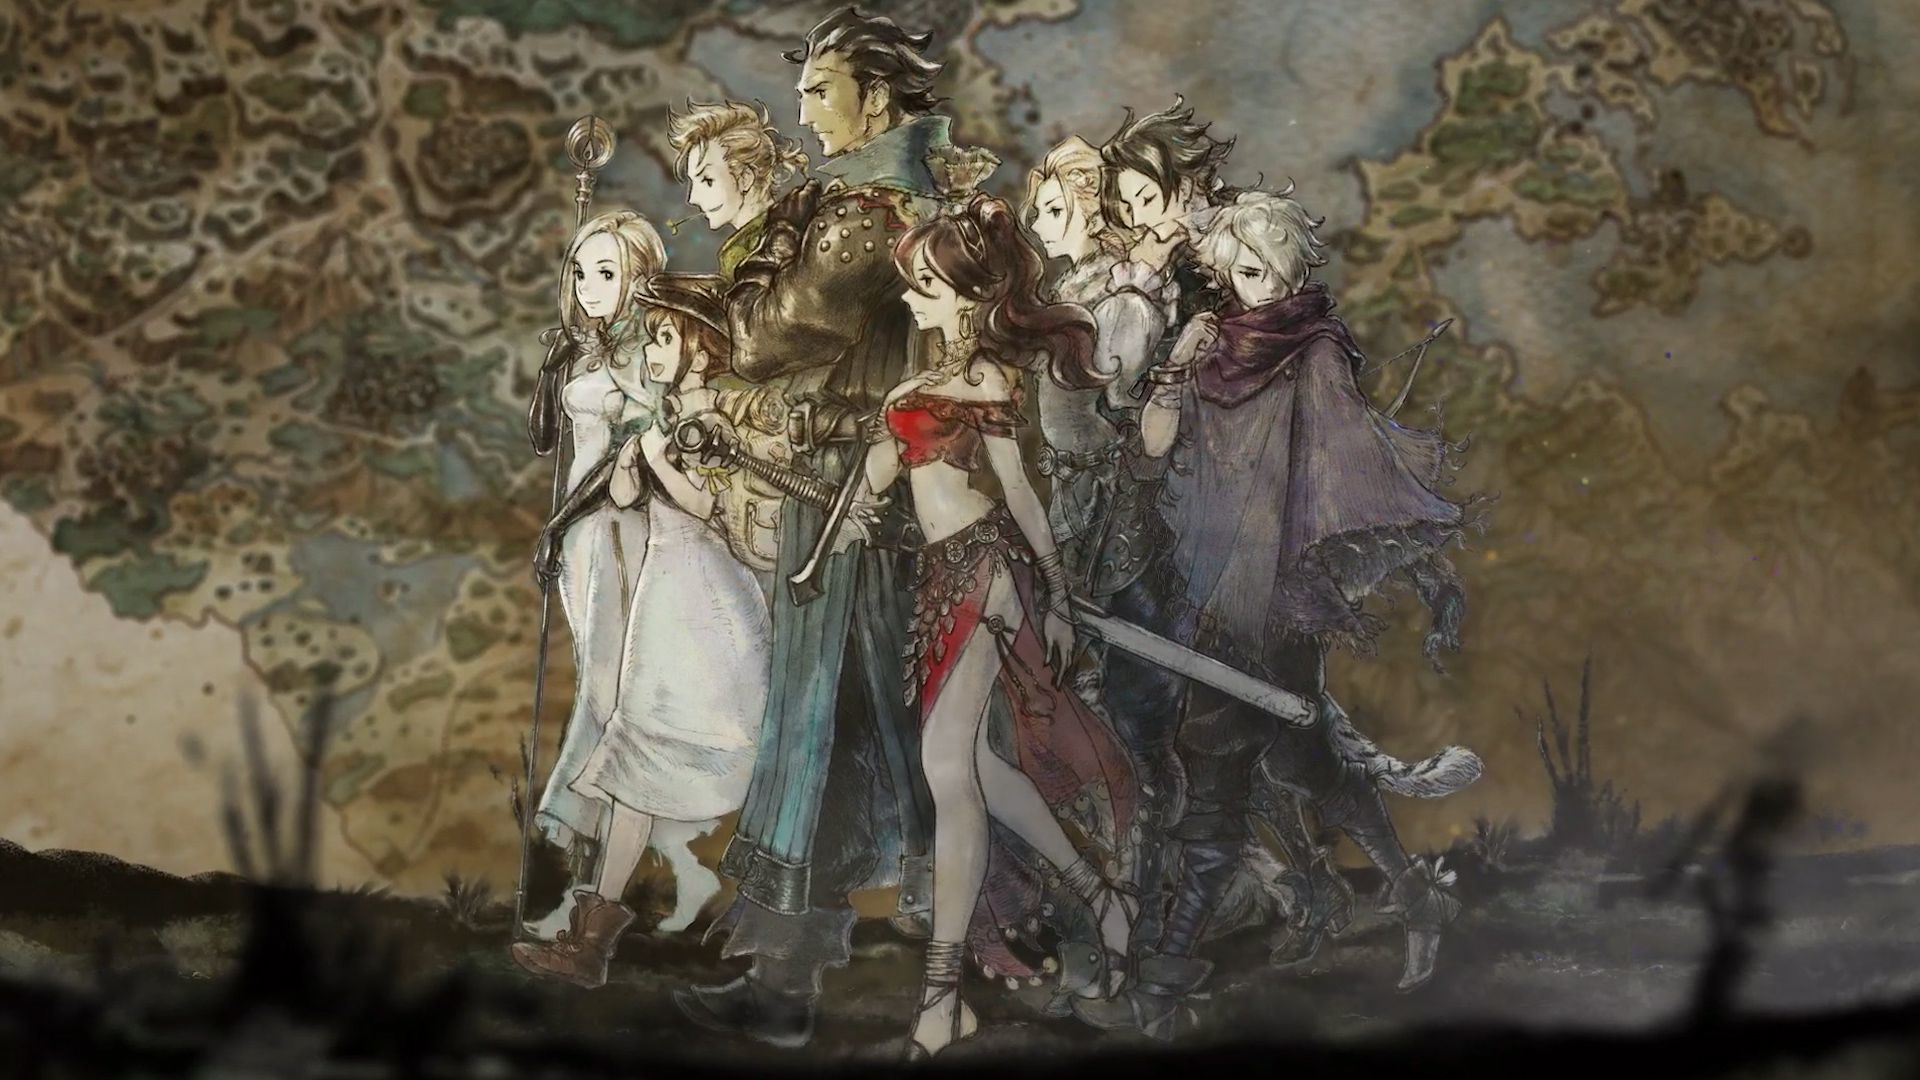 You can get Octopath Traveler for $41.99 during Nintendo's New Year's Digital Sale.